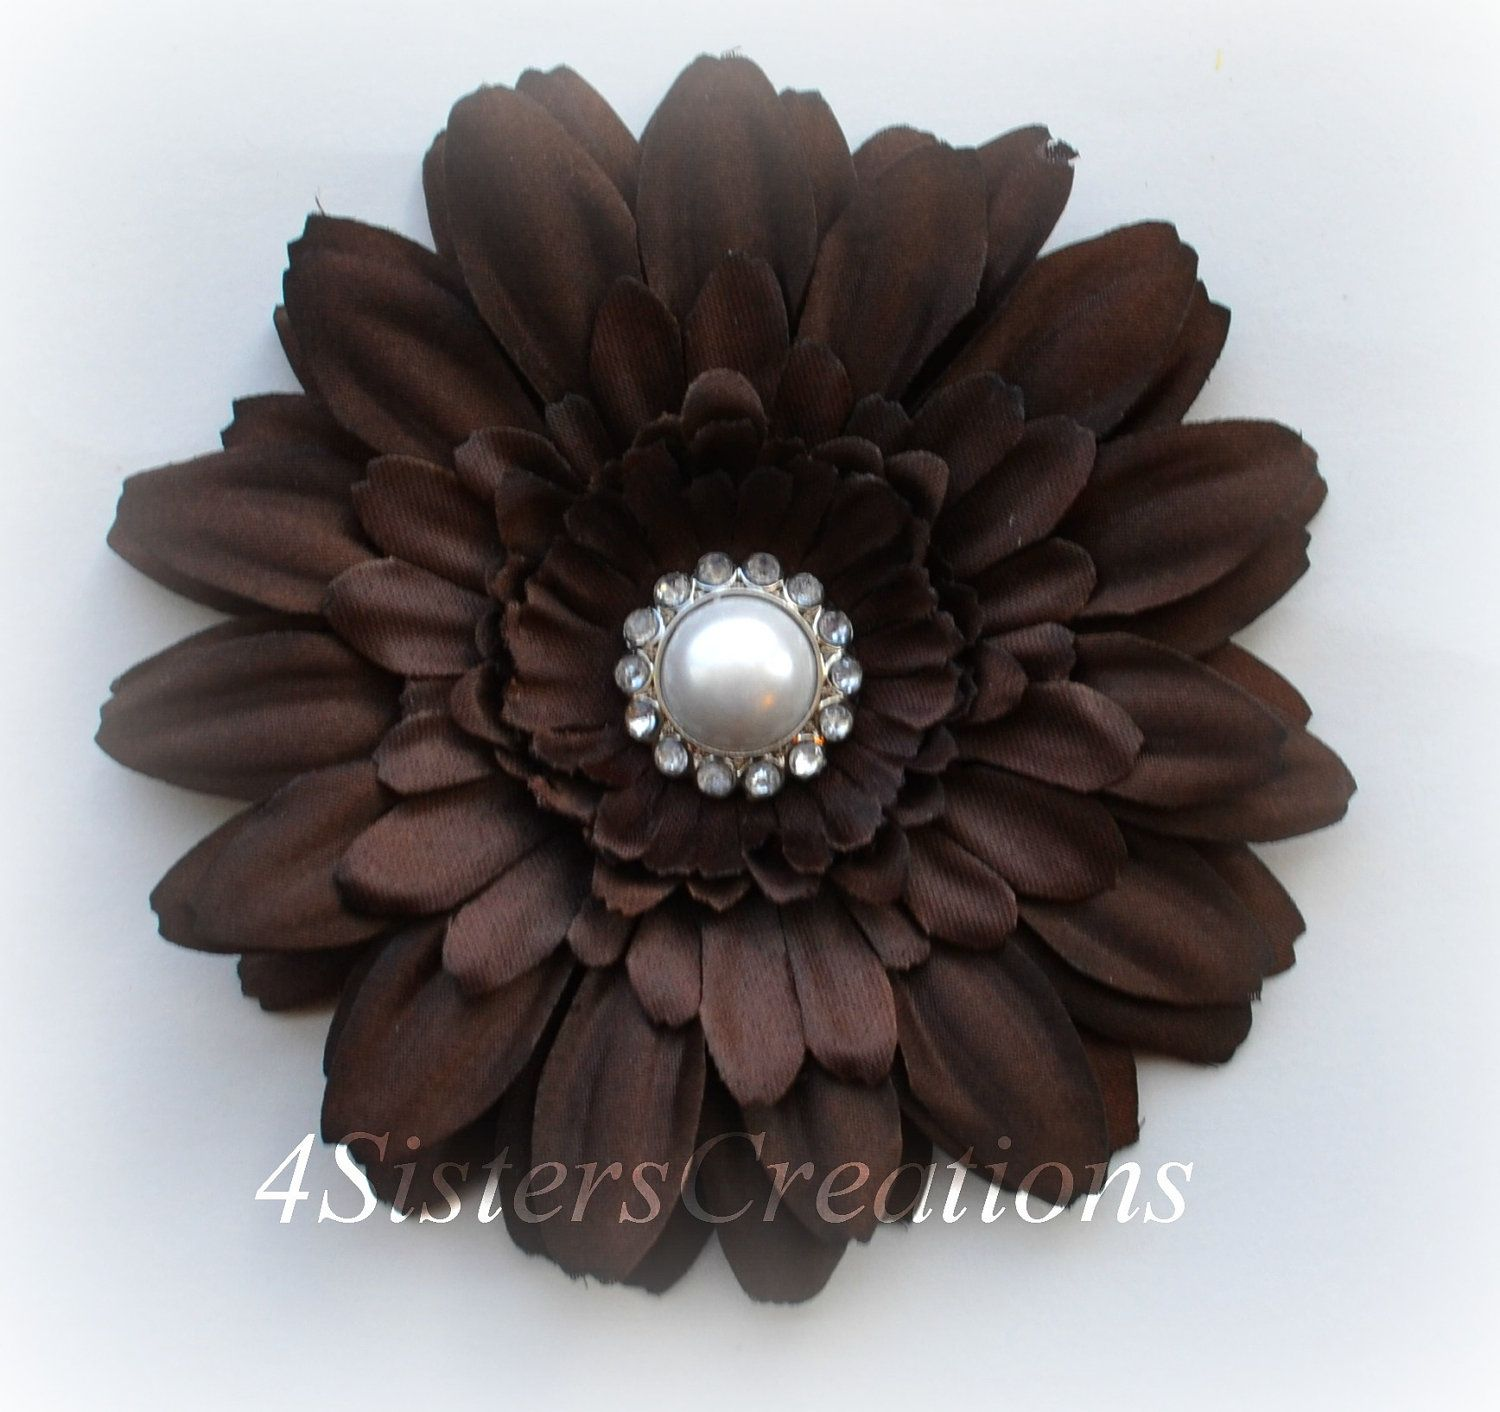 Items Similar To Brown Gerbera Daisy Flower Clip With White Pearl With Cear Rhinestones Center Wedding Flowergirl Brid Daisy Flower Flower Clip Gerbera Daisy A wide variety of daisy brown options are available to you, such my alibaba message center manage rfq my orders my account. pinterest